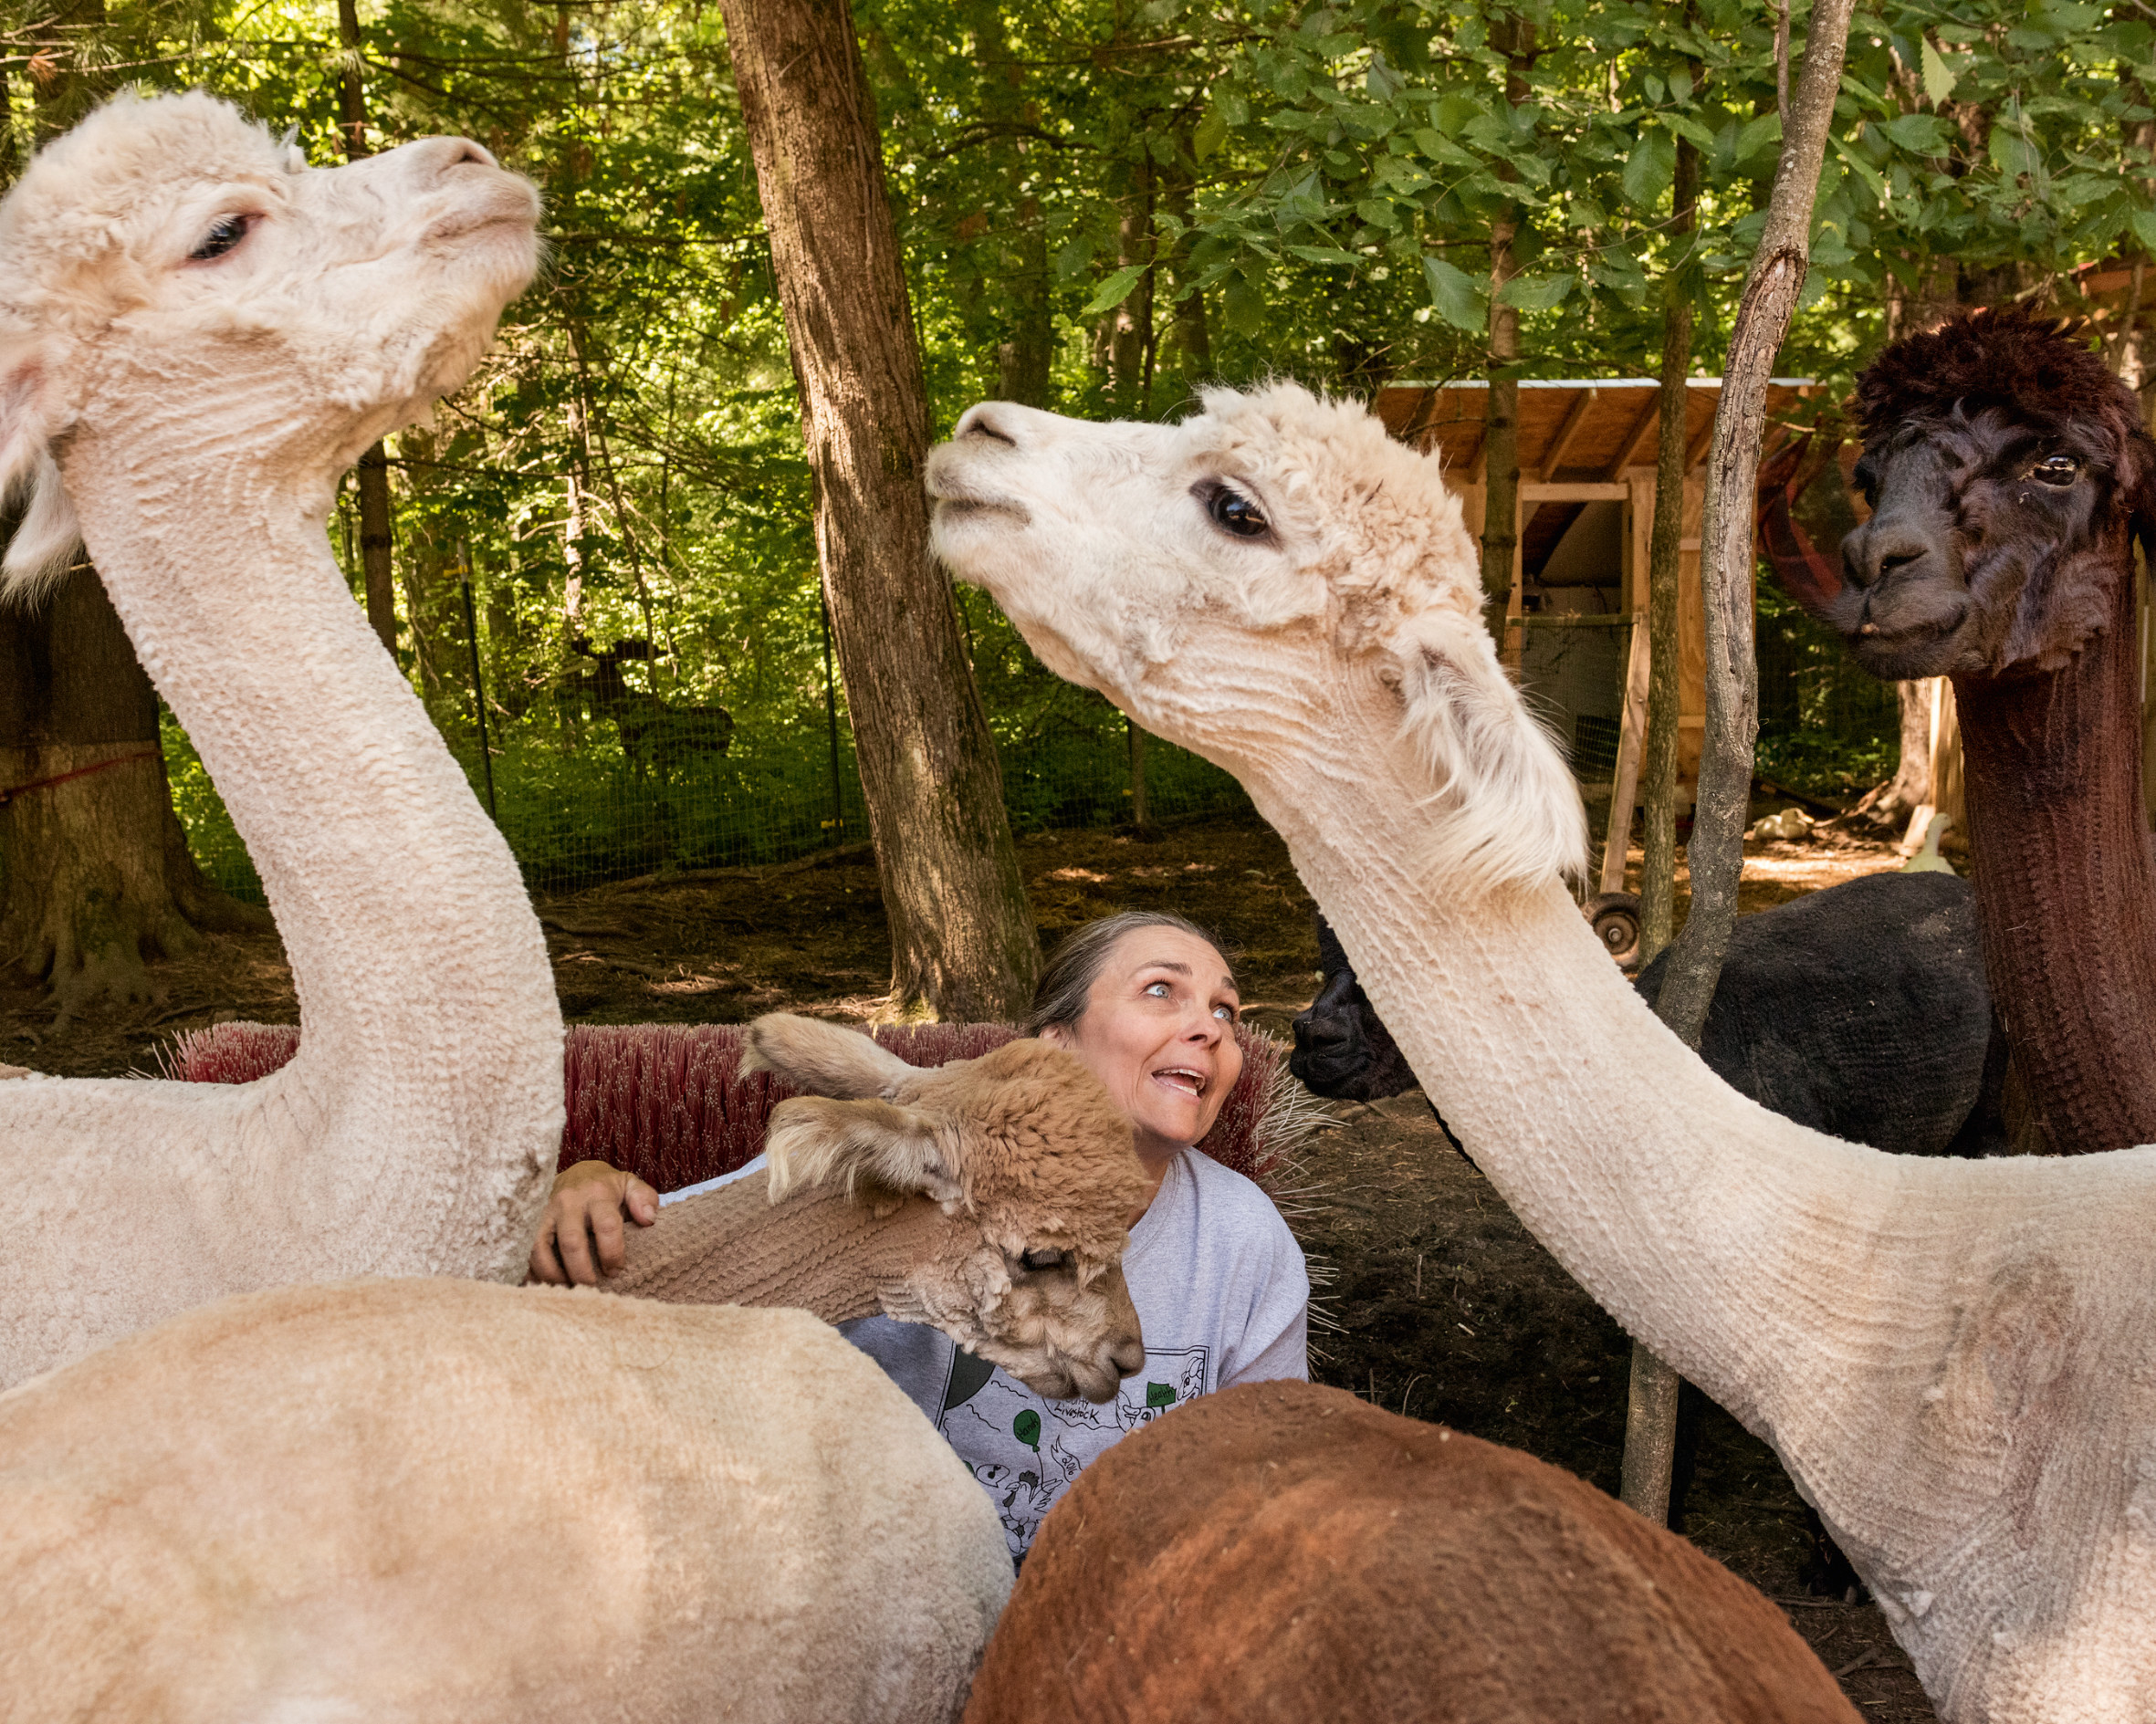 a woman strokes an alpaca as two other alpacas look at each other